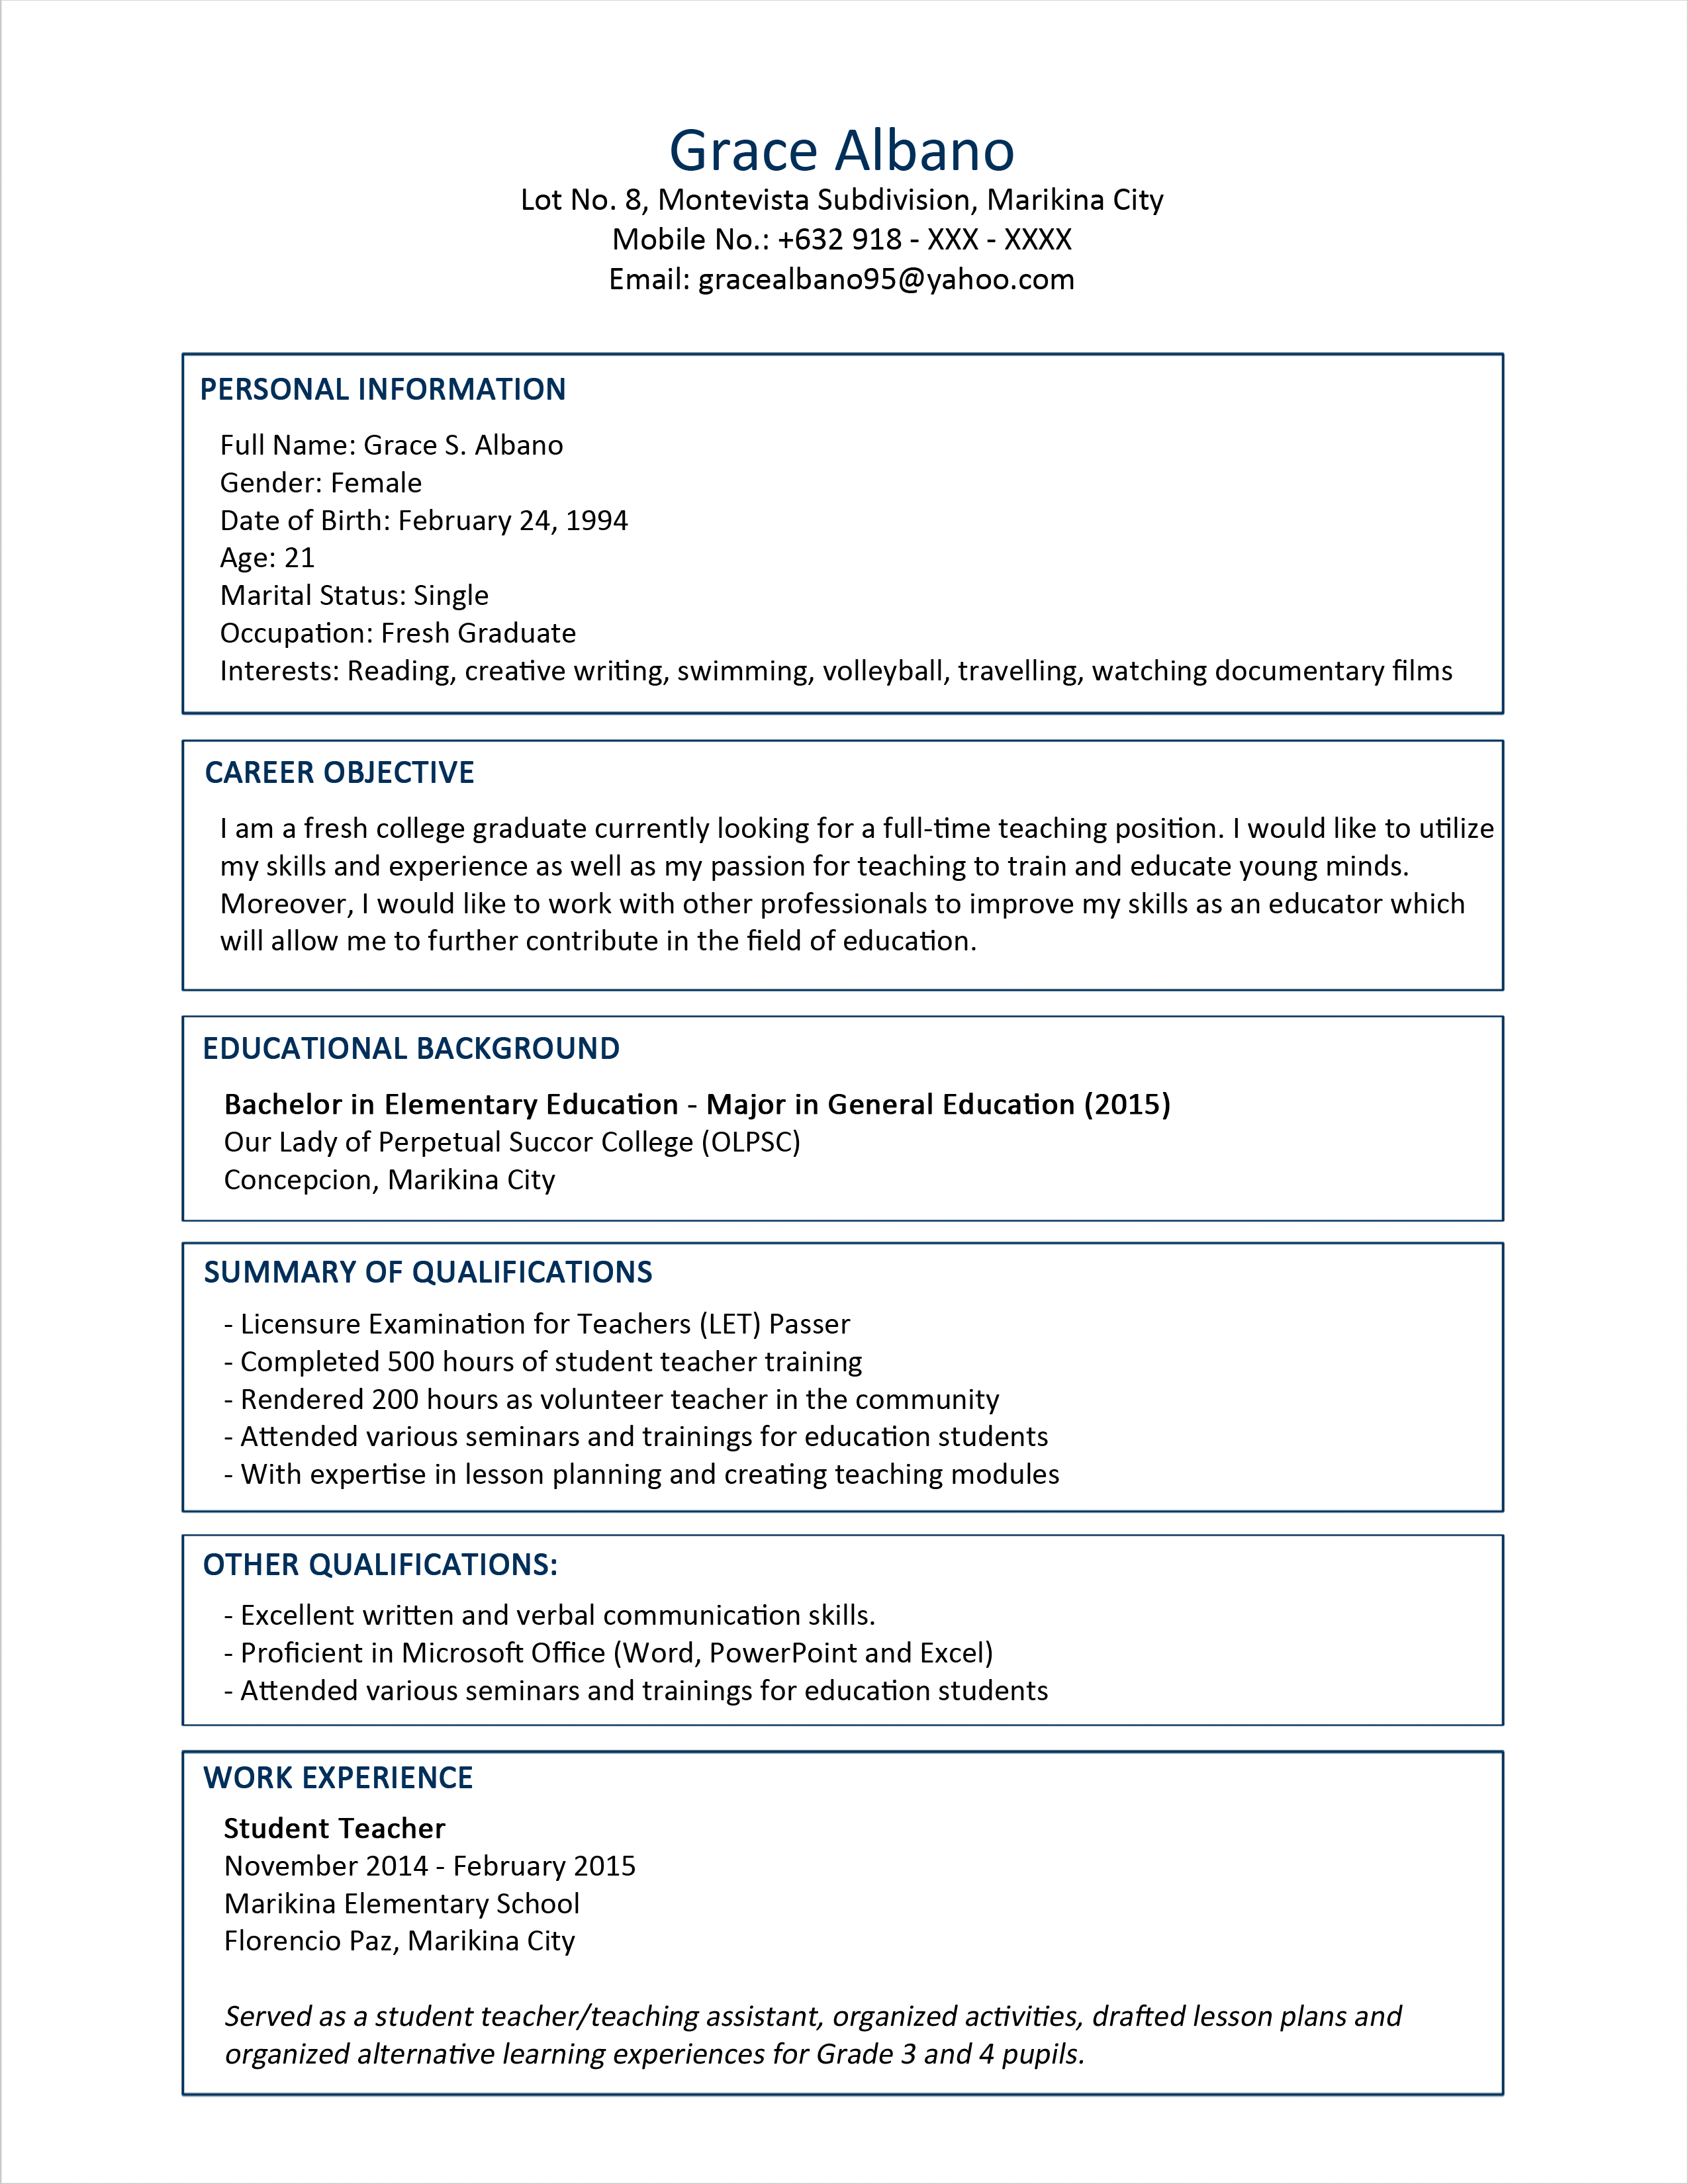 Teaching Curriculum Vitae Template on health physical education, for word, for pmhnp, free creative, clinical resource network blank, sample word, sample academic cv, sample academic, free medical, bahasa indonesia,